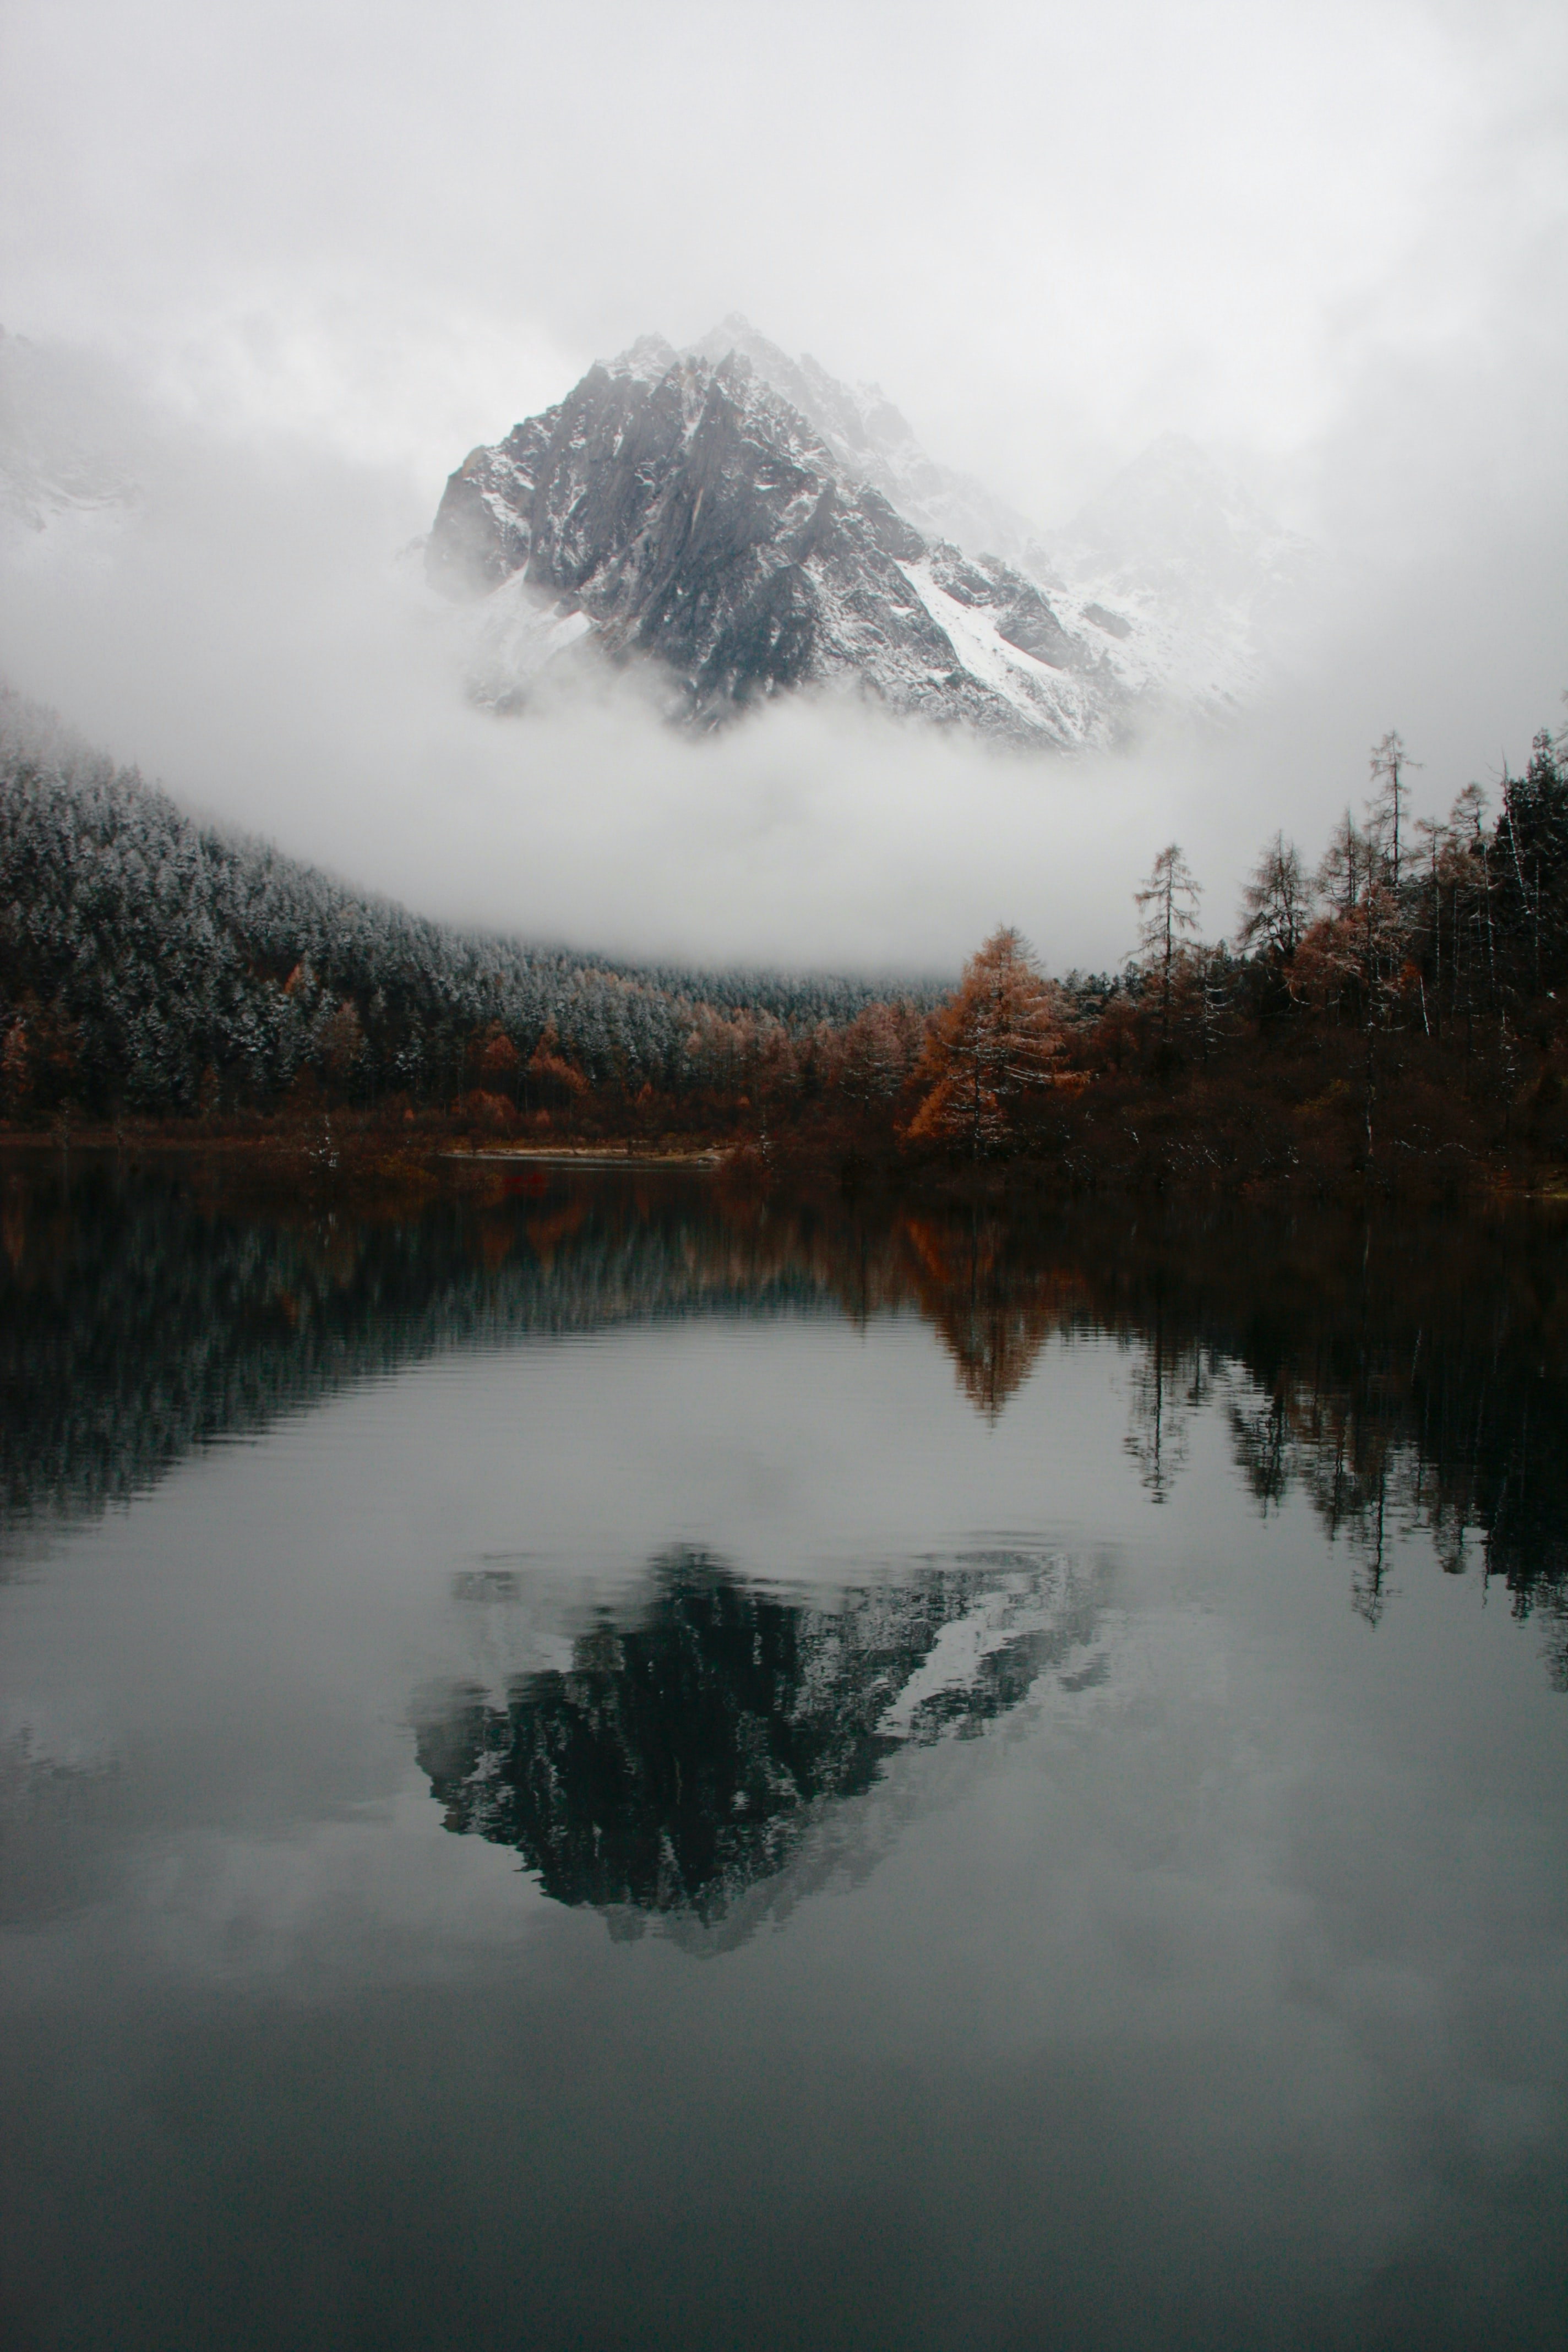 Mountain peak reflects in calm waters surrounded by autumnal trees